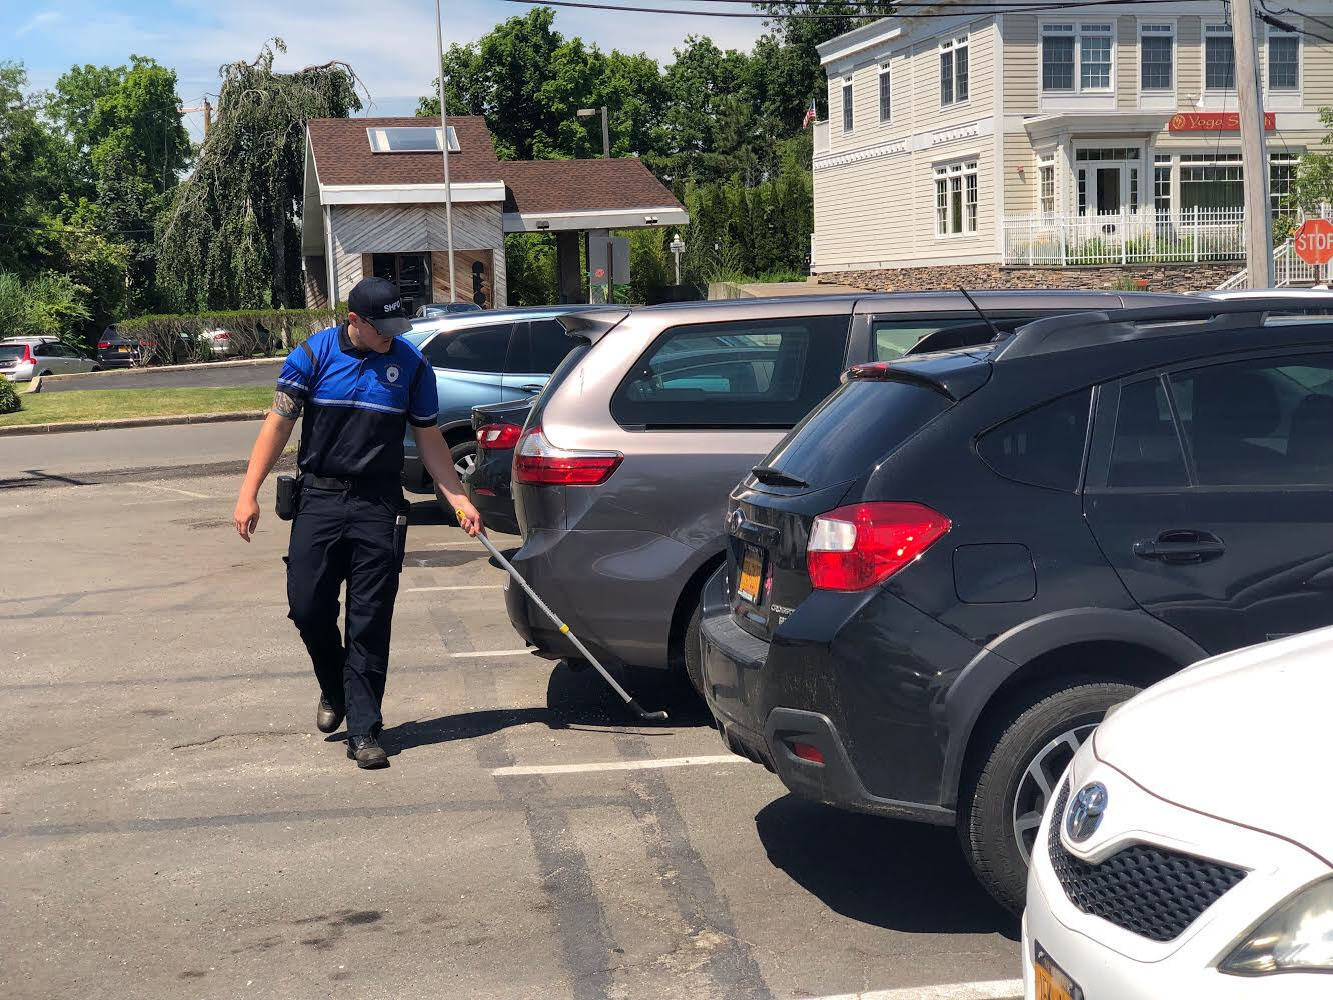 East Hampton Village will be moving to a license plate scanning system and smartphone app system that will allow car owners to pay to extend the amount of time their car will be parked to avoid a ticket.